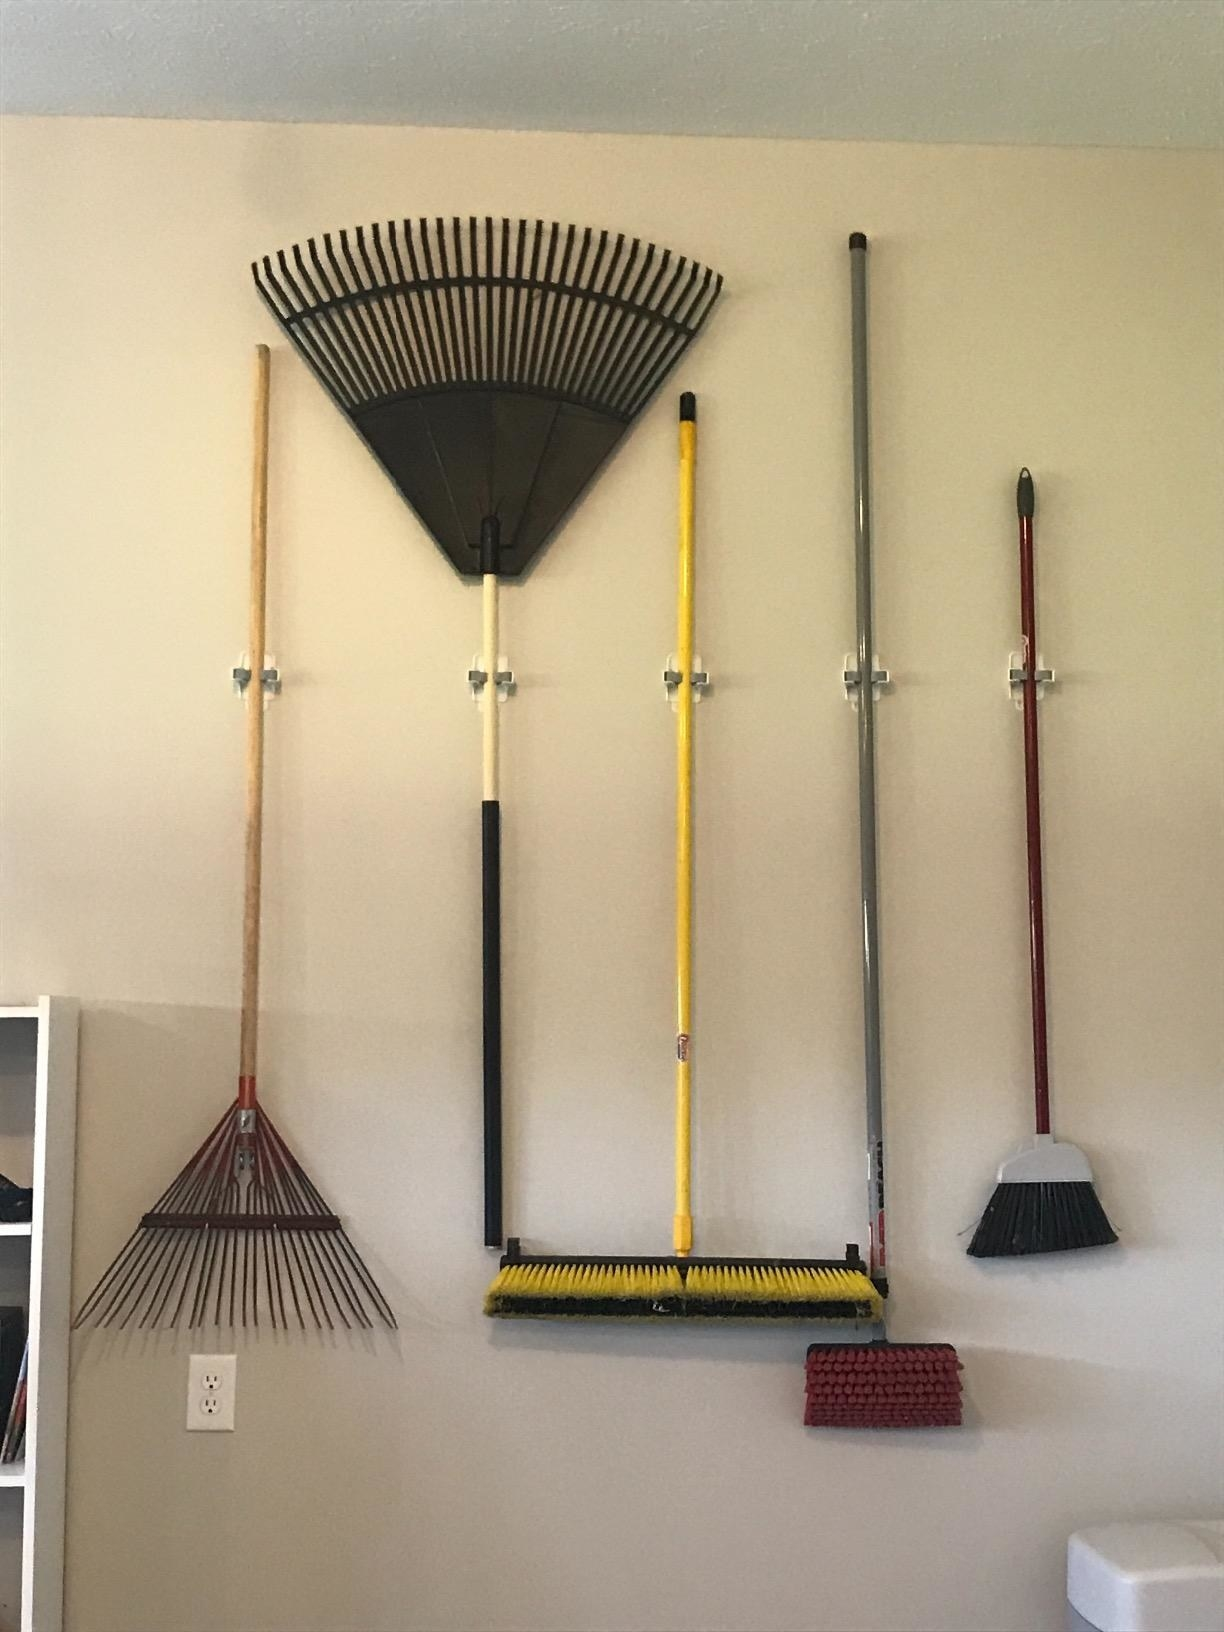 reviewer image of many brooms on wall